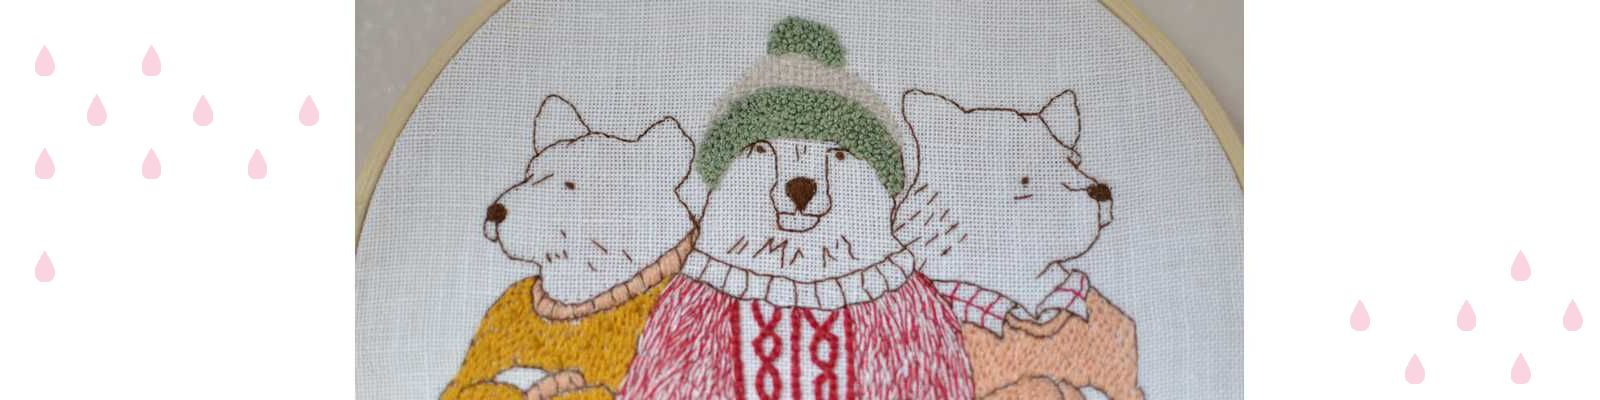 Broderie d'hiver : « Gang of bears » #MarionRomainPatterns